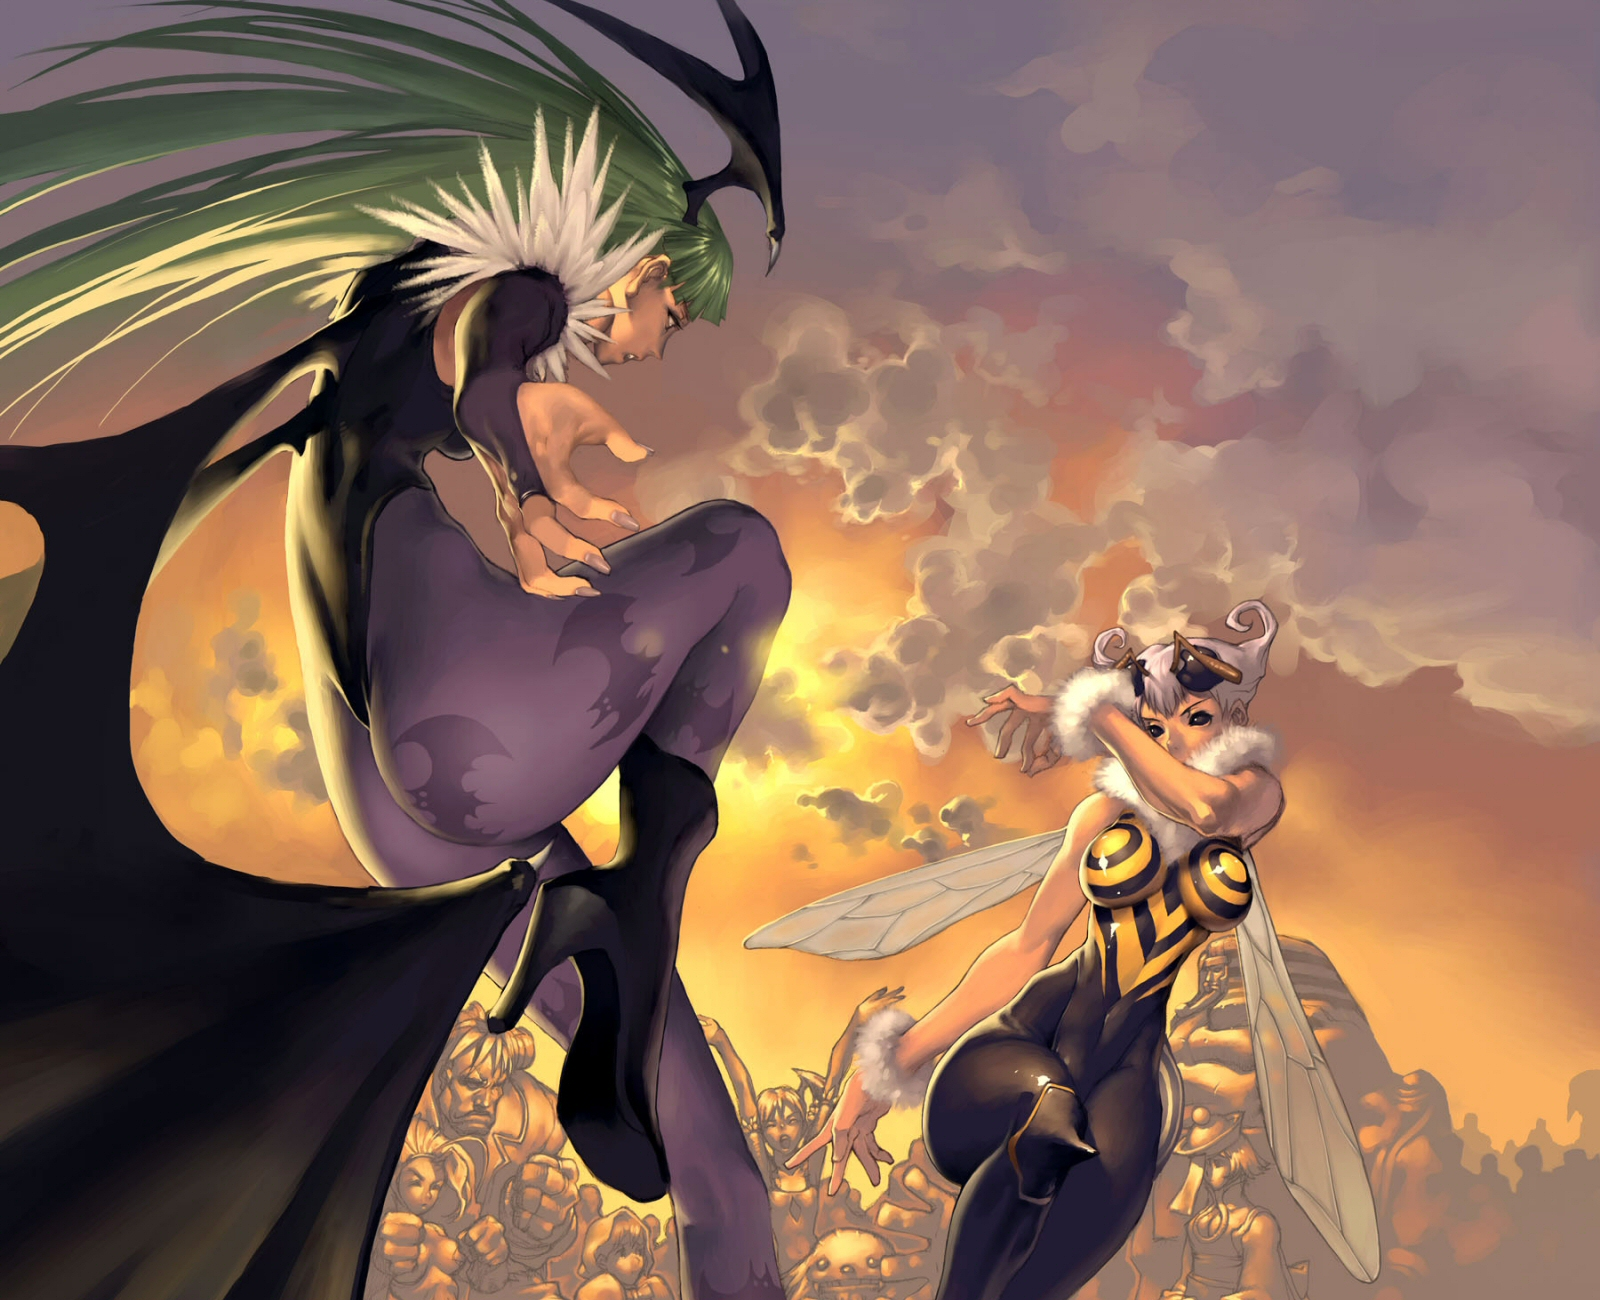 capcom darkstalkers morrigan_aensland q-bee wings